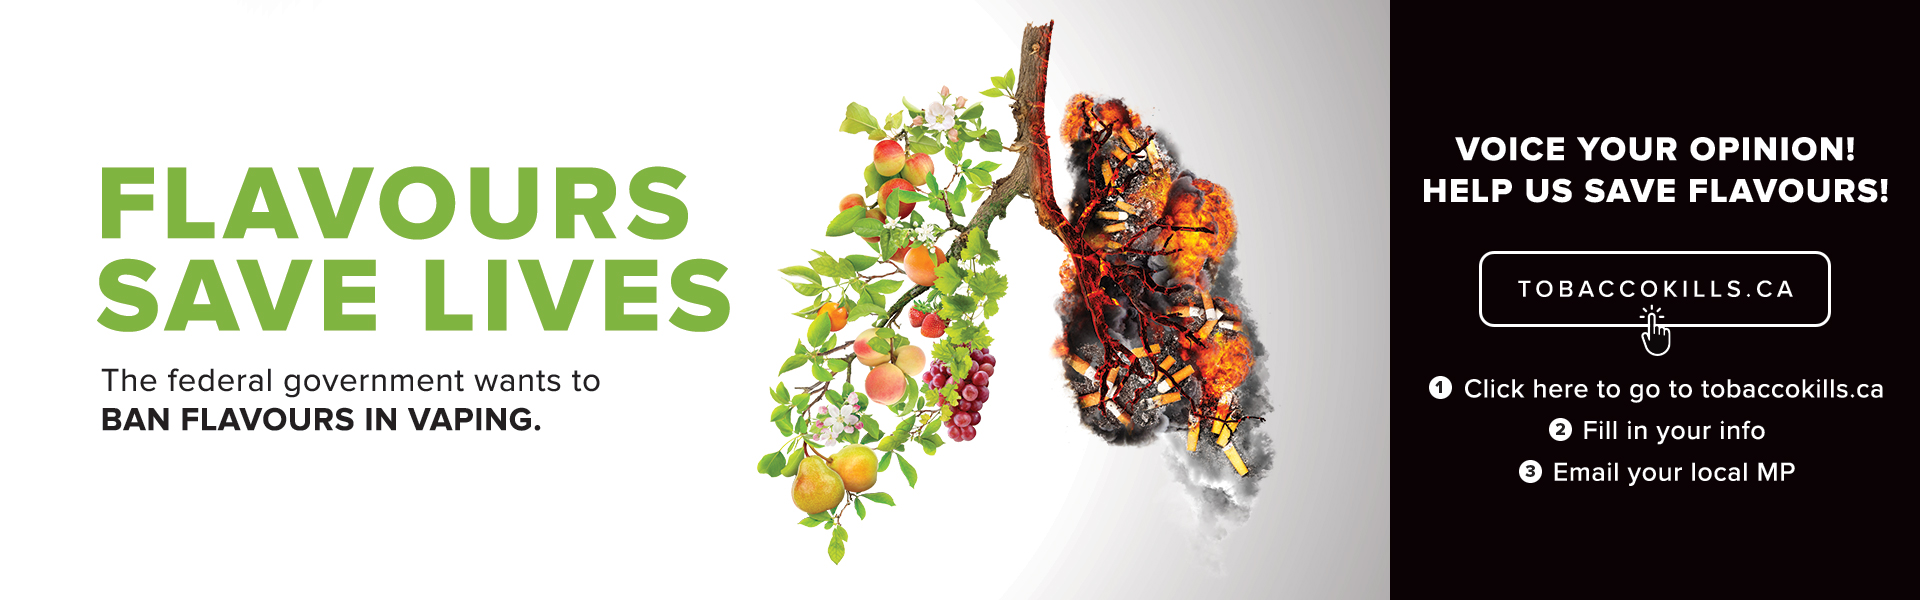 Flavours-Save-Lives_Web-Banner_1920x600_Ver1